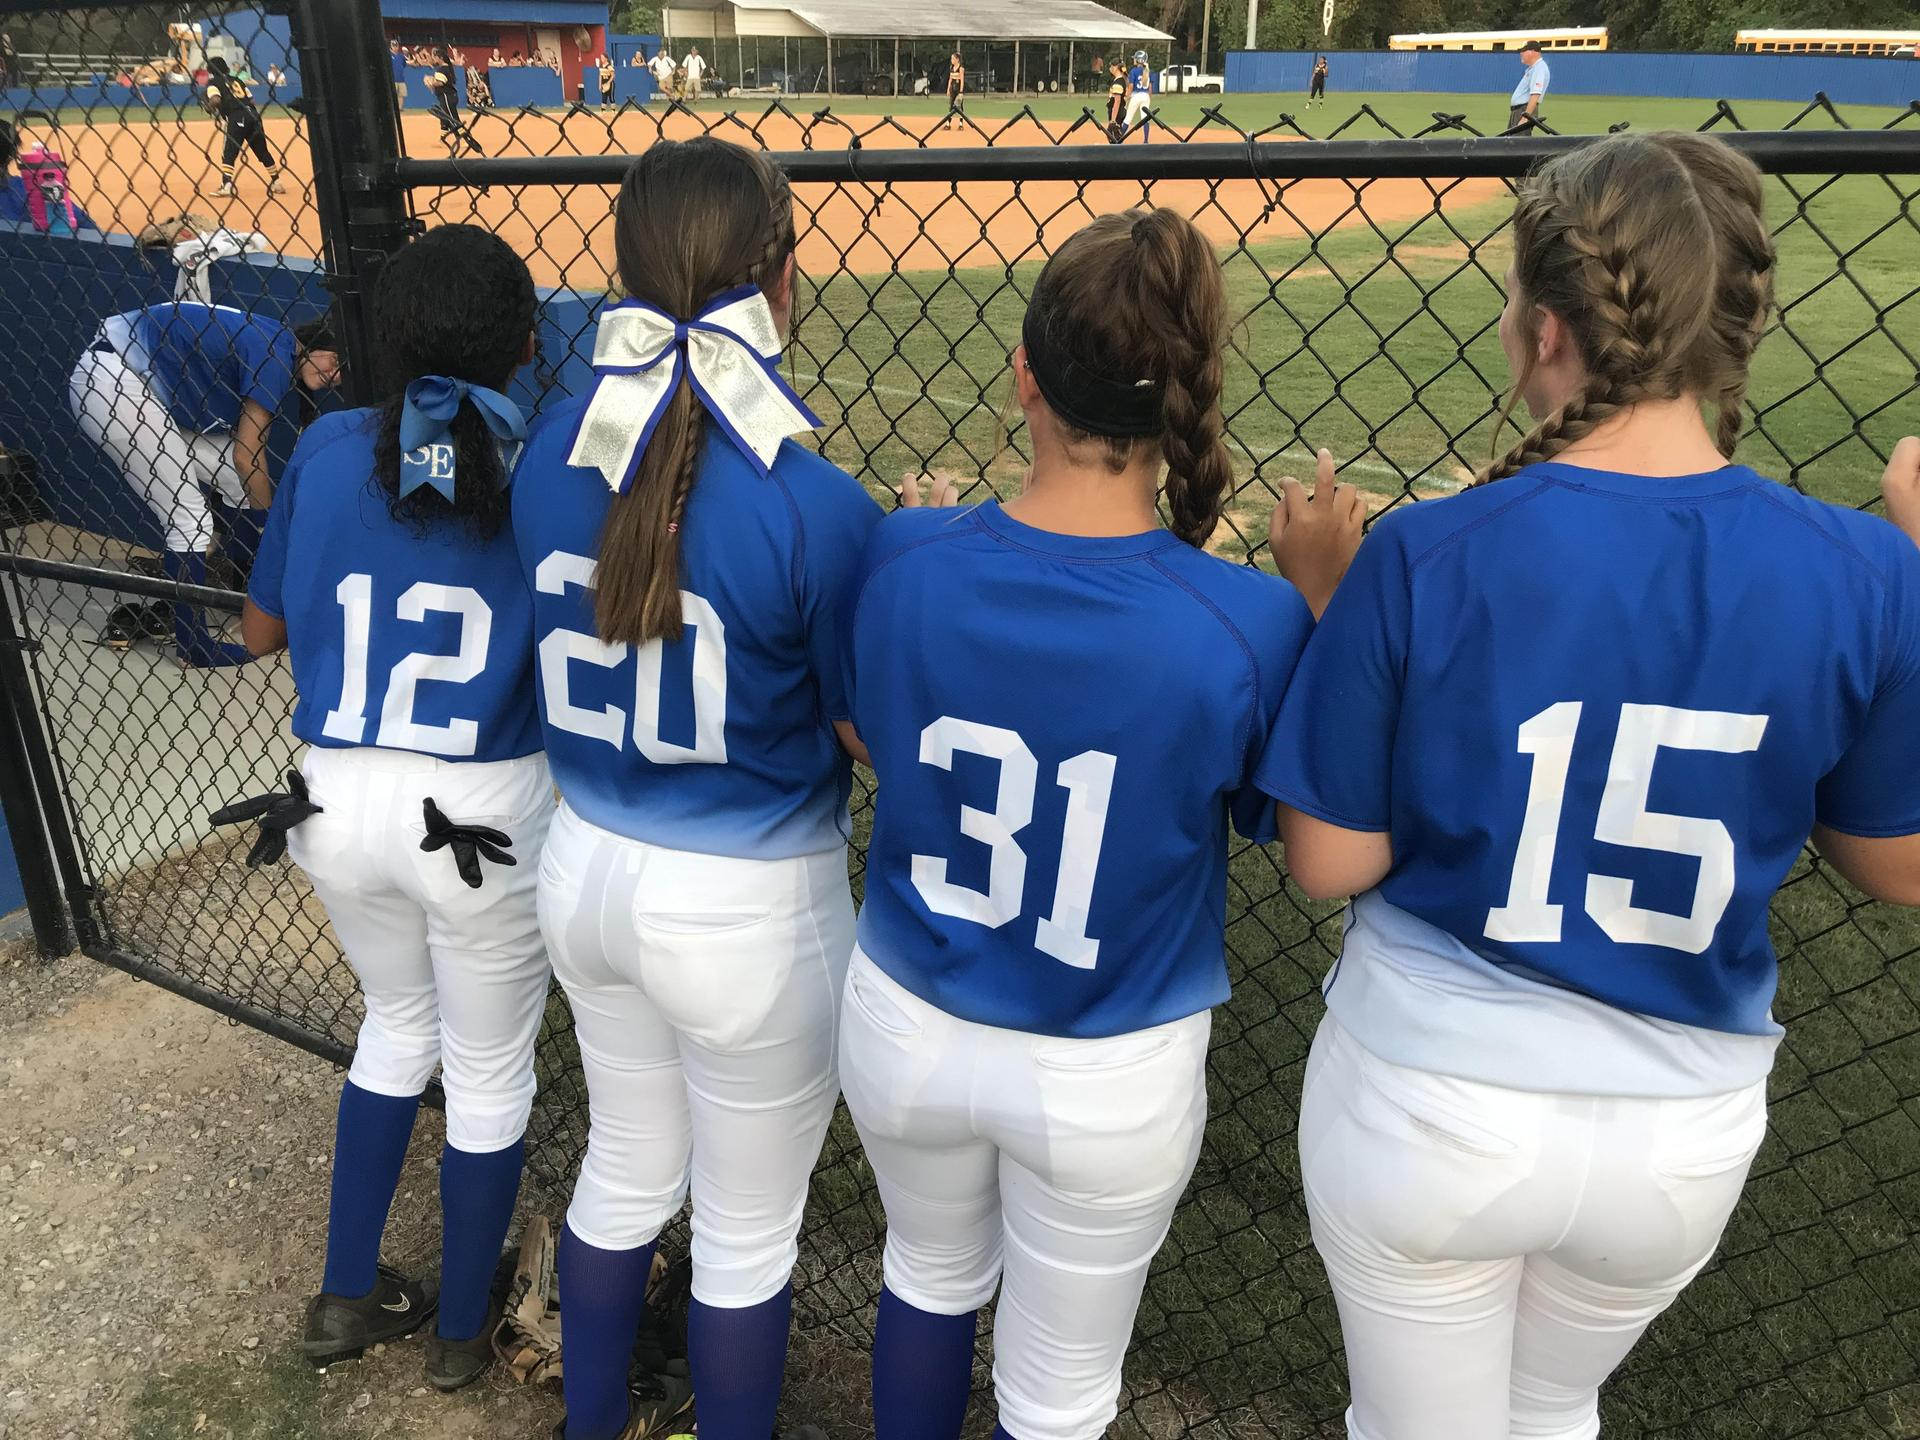 SEHS softball players gazing at a game.